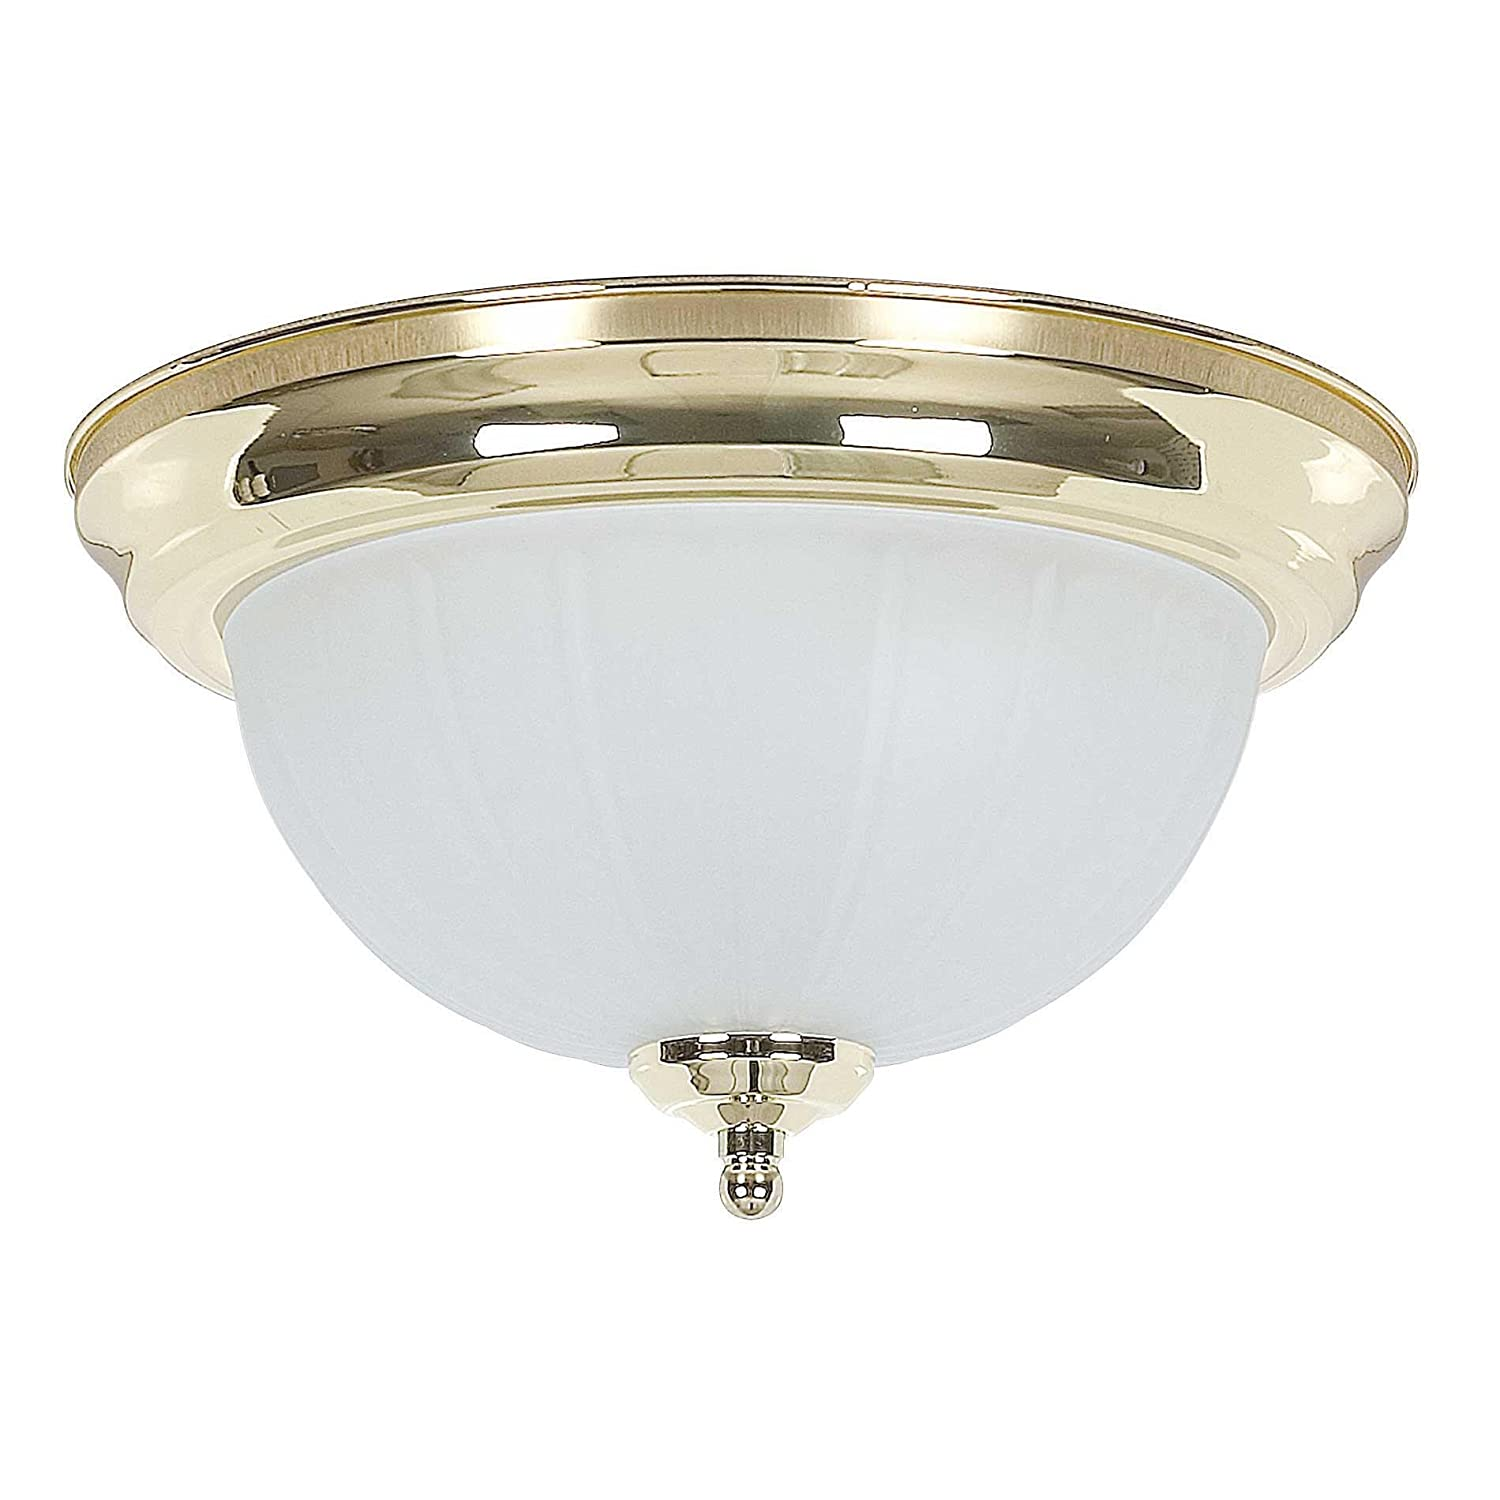 Sunset Lighting F7116-10 Flush Mount with Frosted Melon Glass Polished Brass Finish